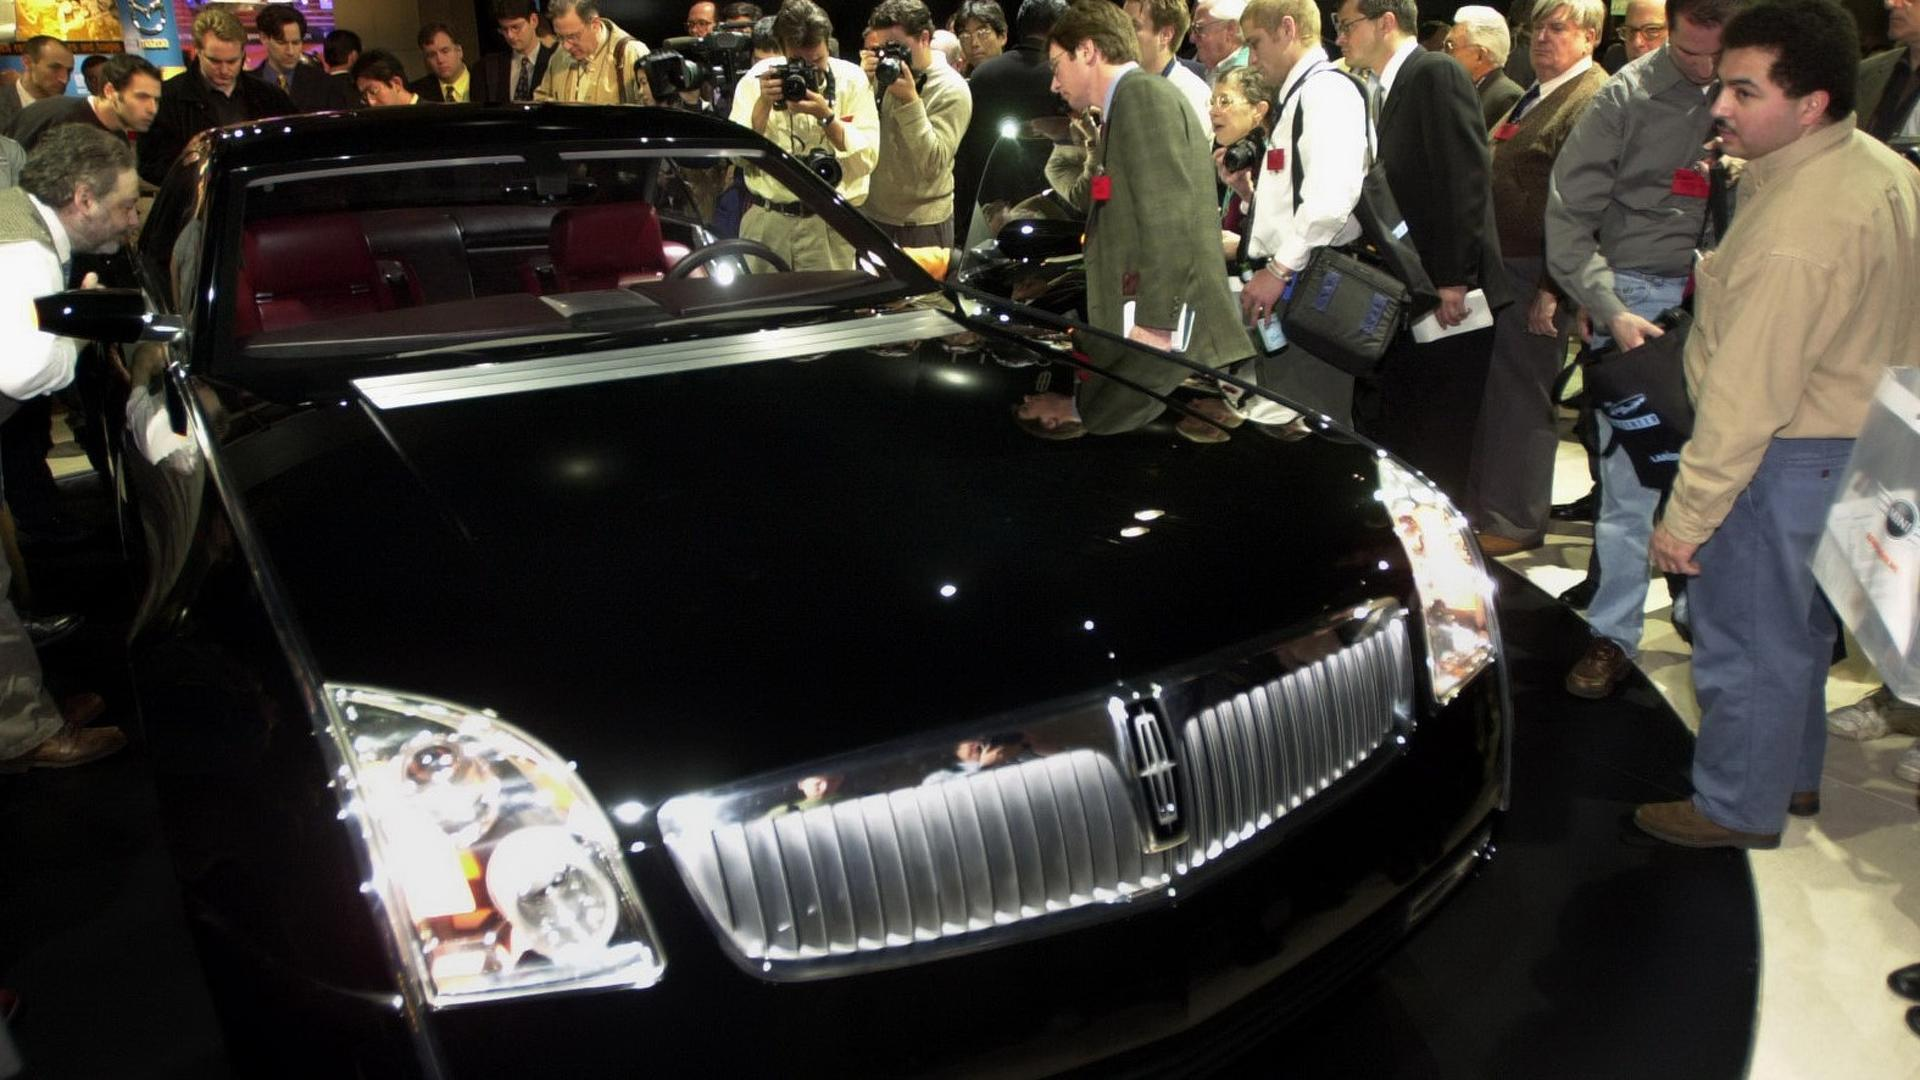 https://icdn-2.motor1.com/images/mgl/2yxXK/s1/2001-lincoln-mk9-concept.jpg